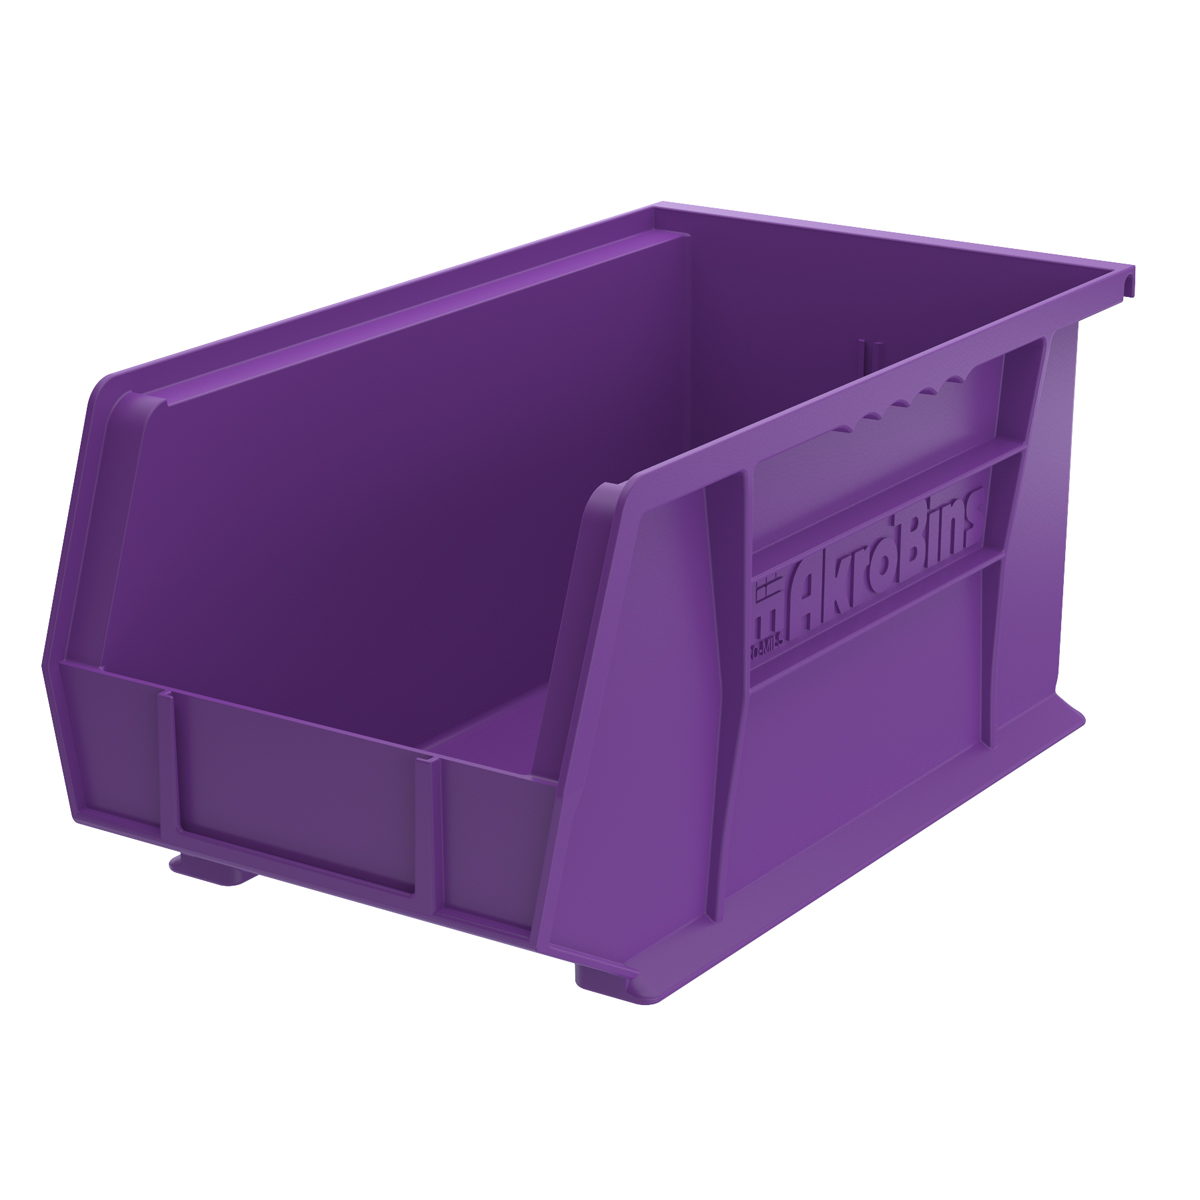 AkroBin 14-3/4 x 8-1/4 x 7, Purple (30240PURPL).  This item sold in carton quantities of 12.